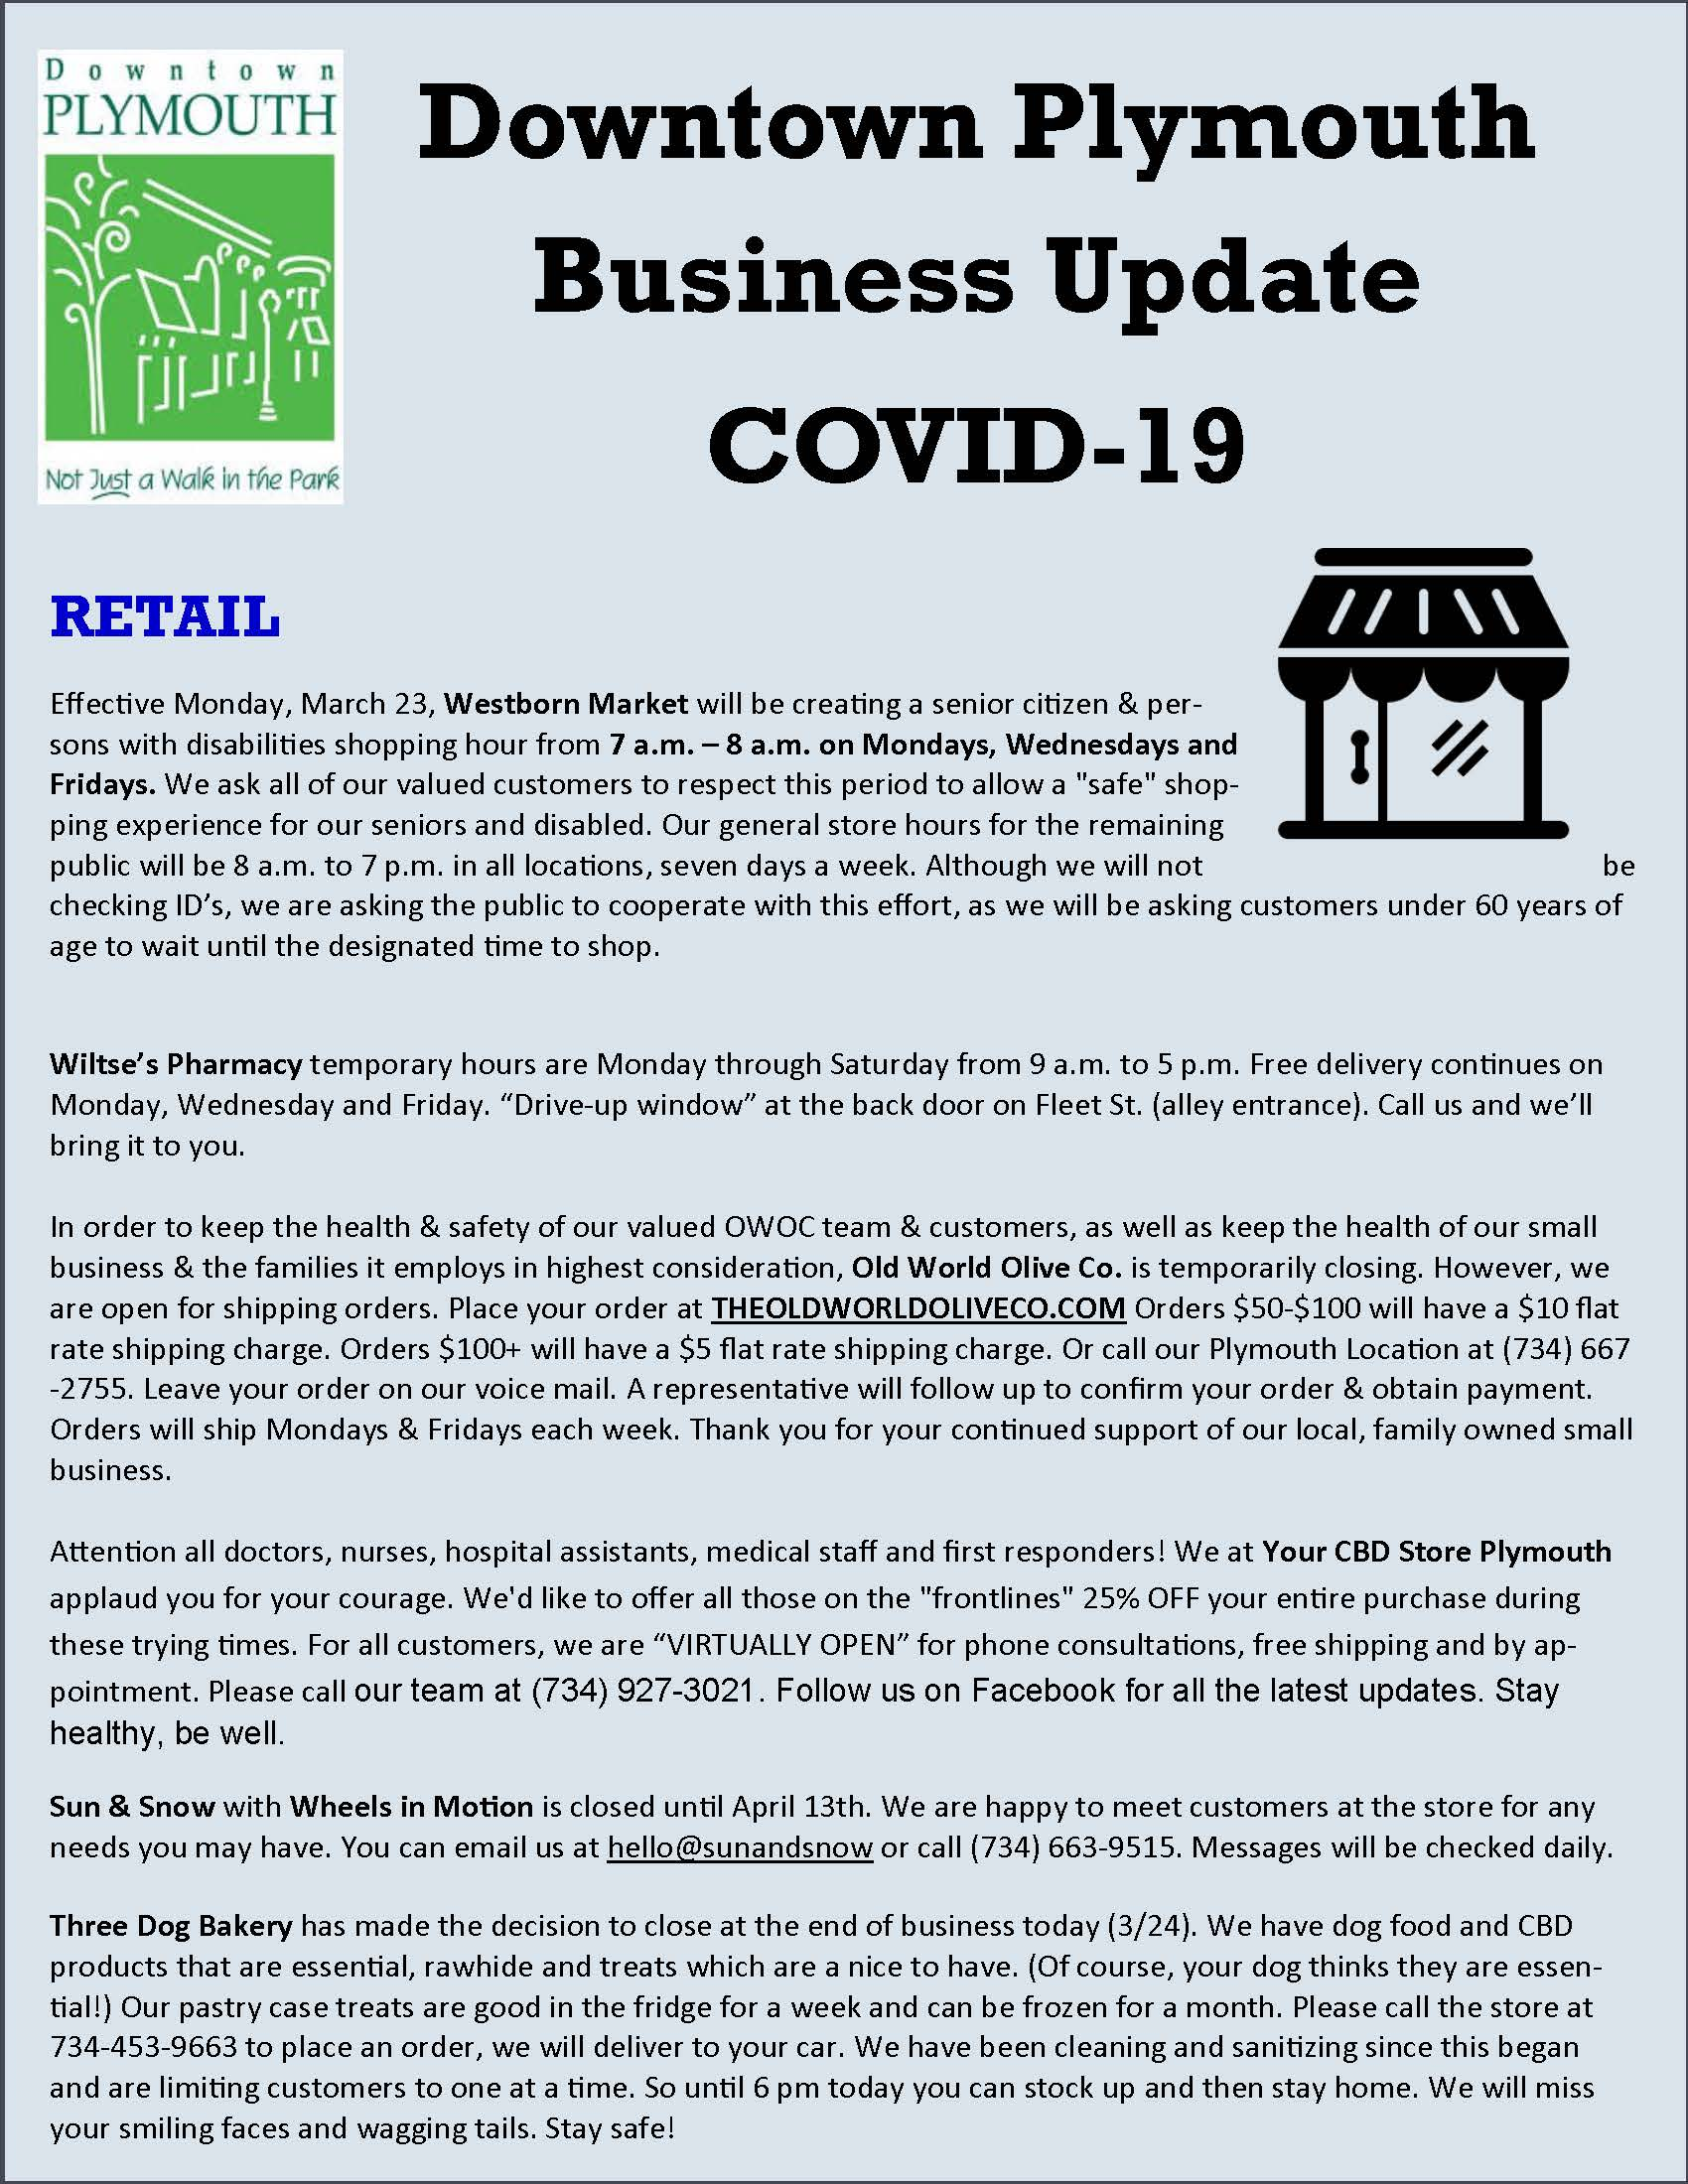 Downtown Plymouth business update 4-3_Page_05